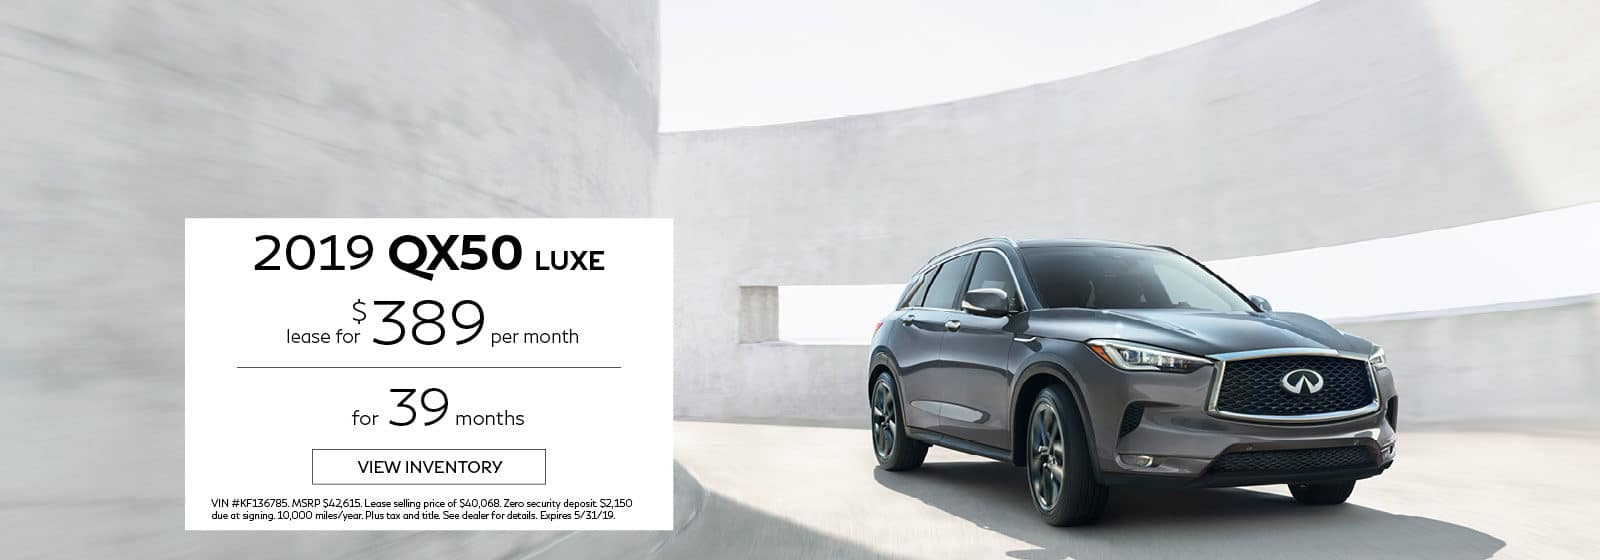 2019 QX50_389_lease_May